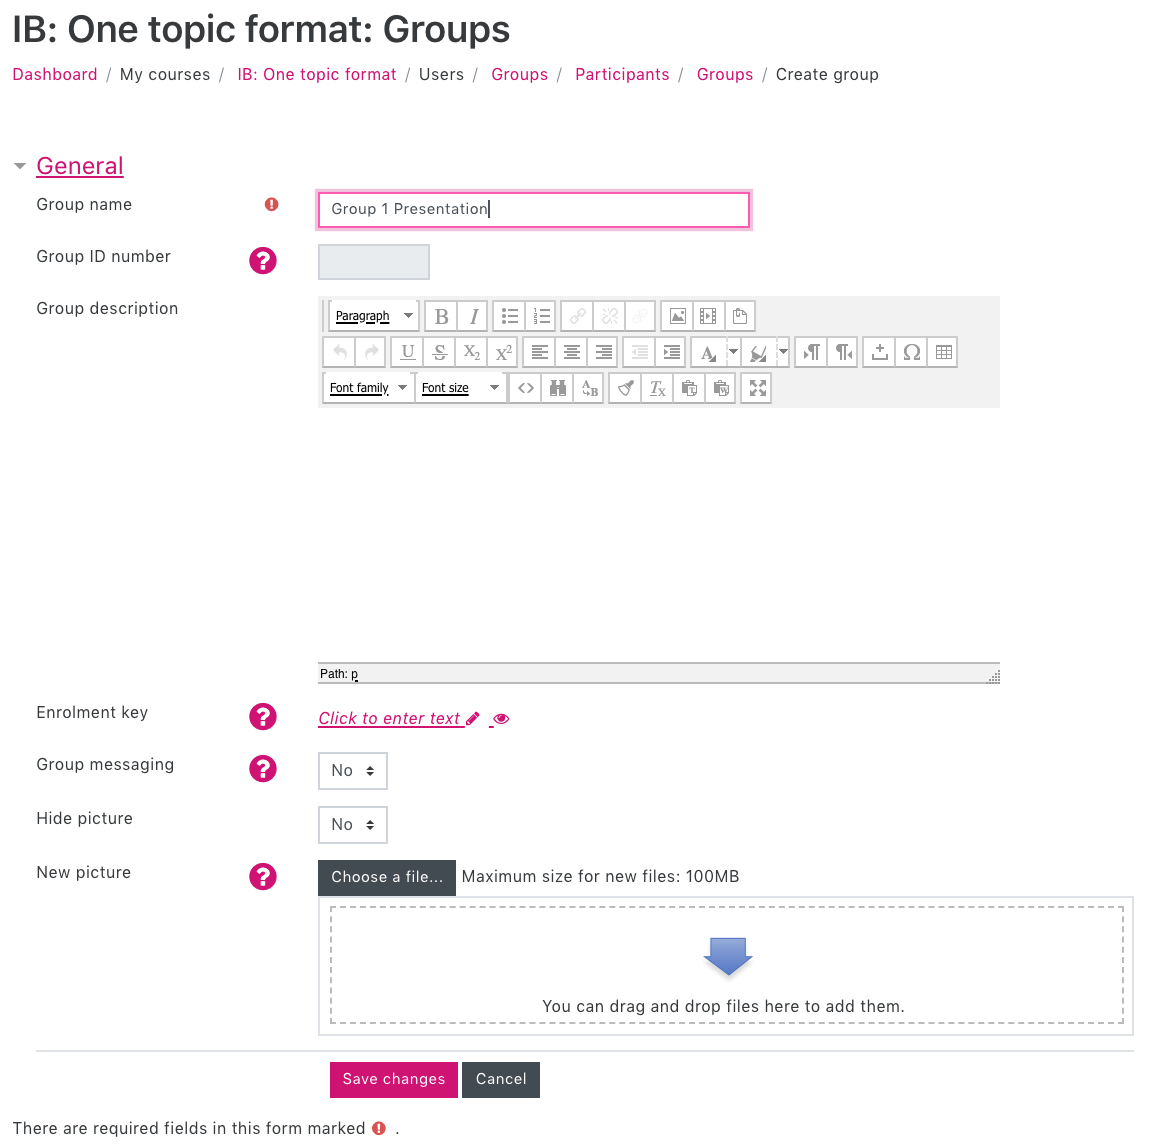 Screenshot of the Groups window showing Group name and Group description boxes.